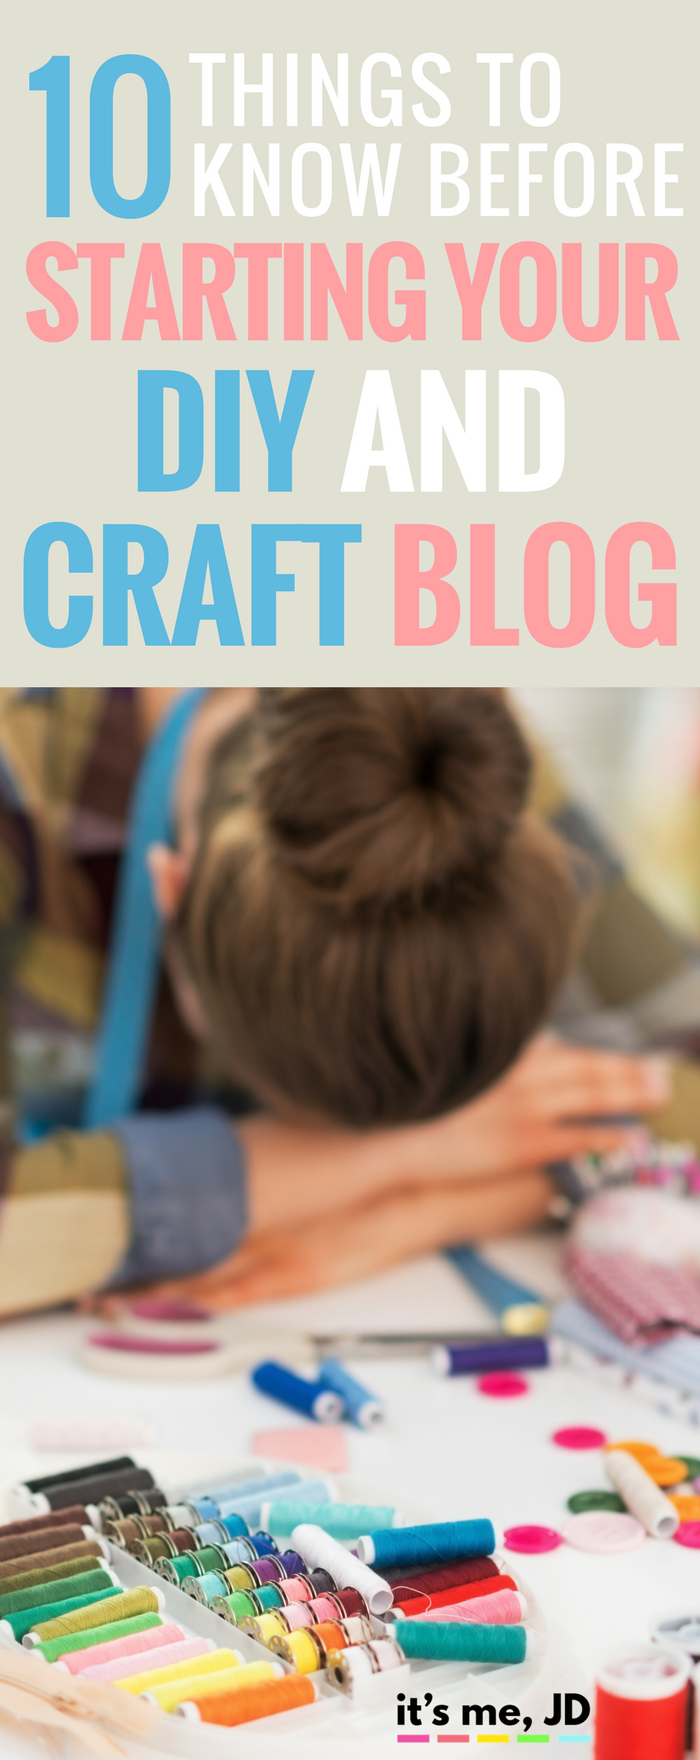 10 THINGS TO KNOW BEFORE STARTING YOUR DIY AND CRAFT BLOG, Successful, blog post, ideas